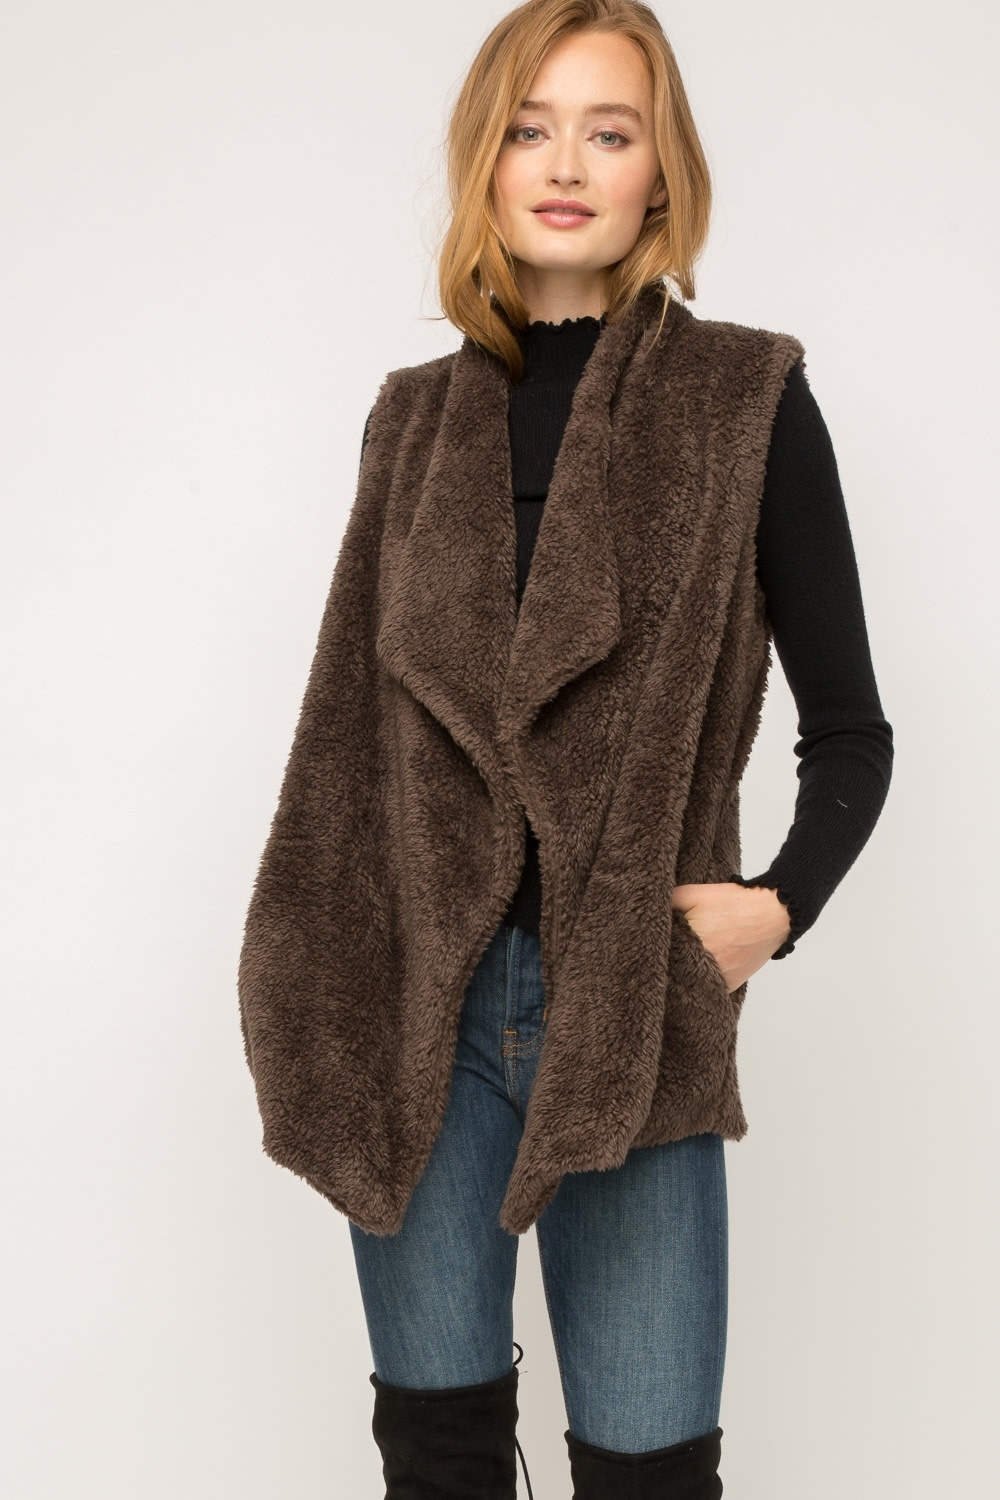 Fleurish Home Chocolate Faux Fur Drape Front Vest